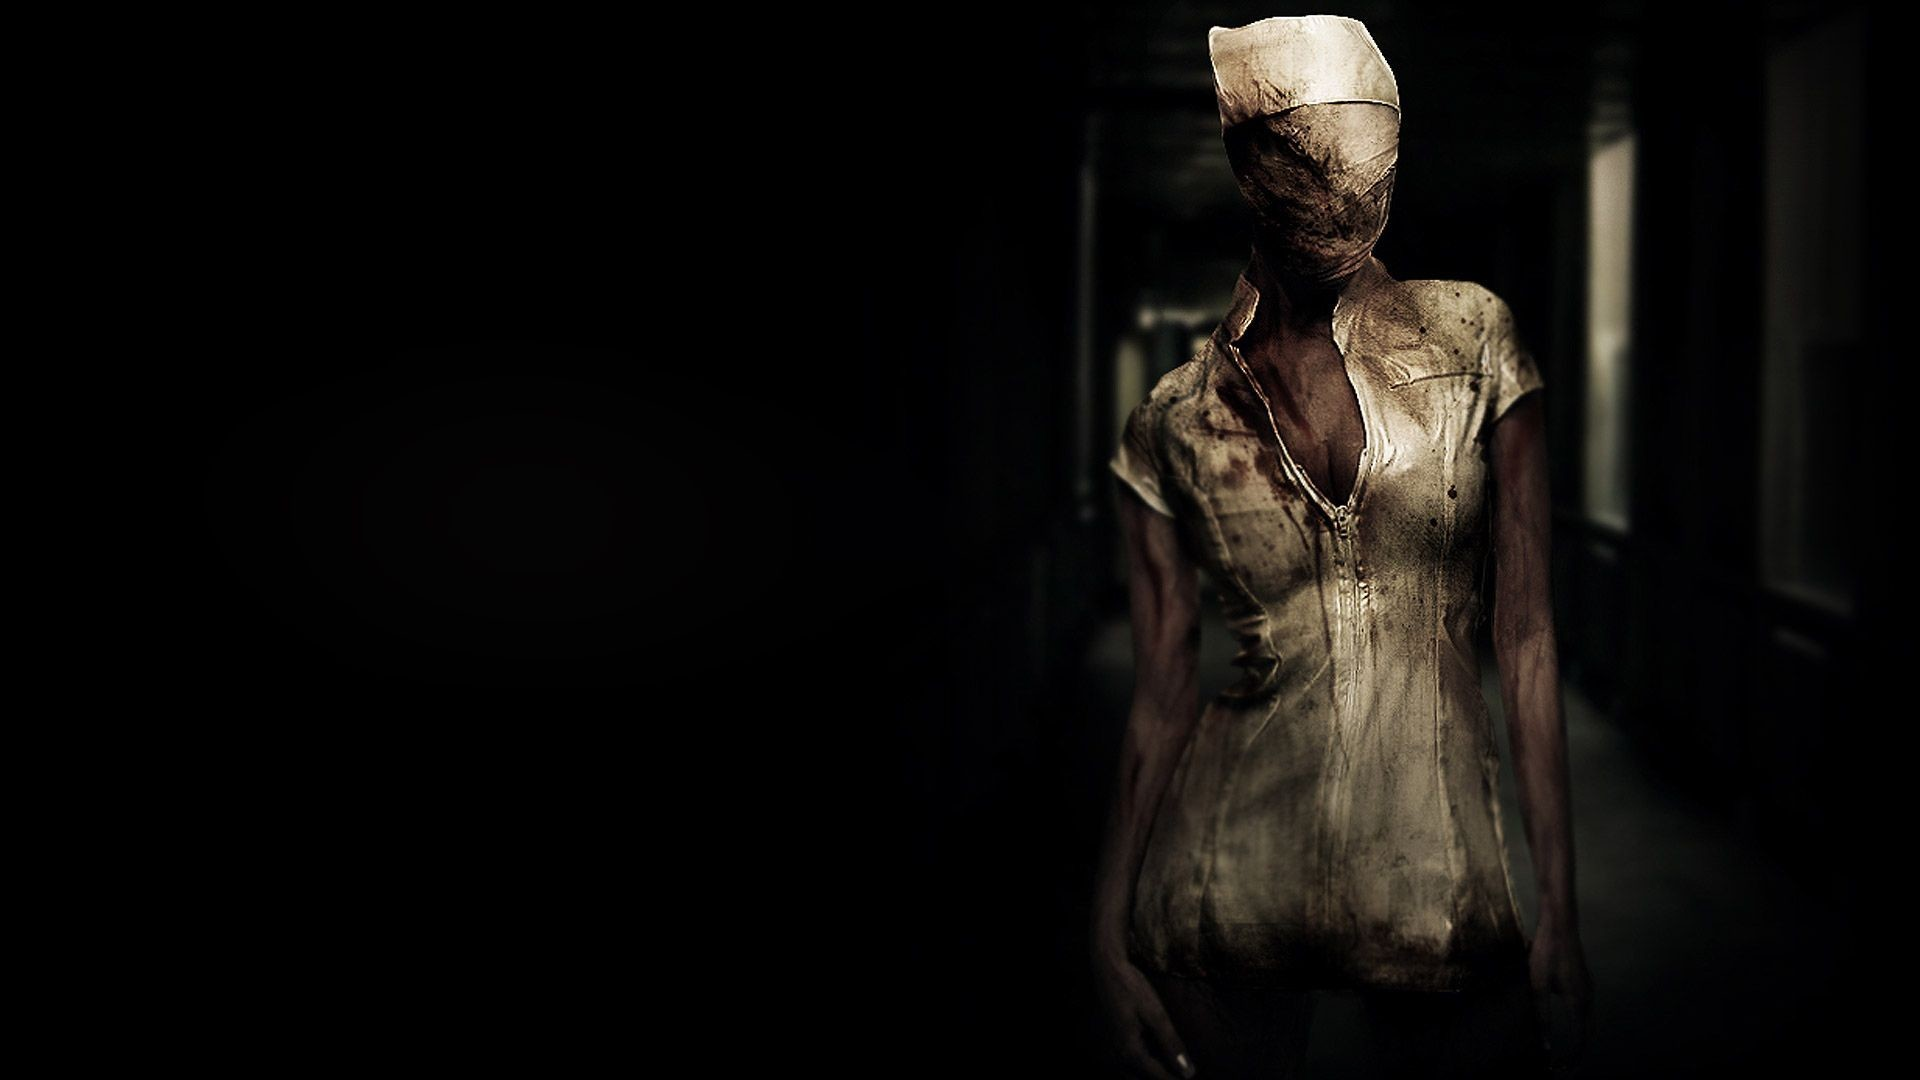 Res: 1920x1080, Scary Zombie Wallpaper High Quality Resolution On Wallpaper Hd 1920 x 1080  px 623.08 KB zombie